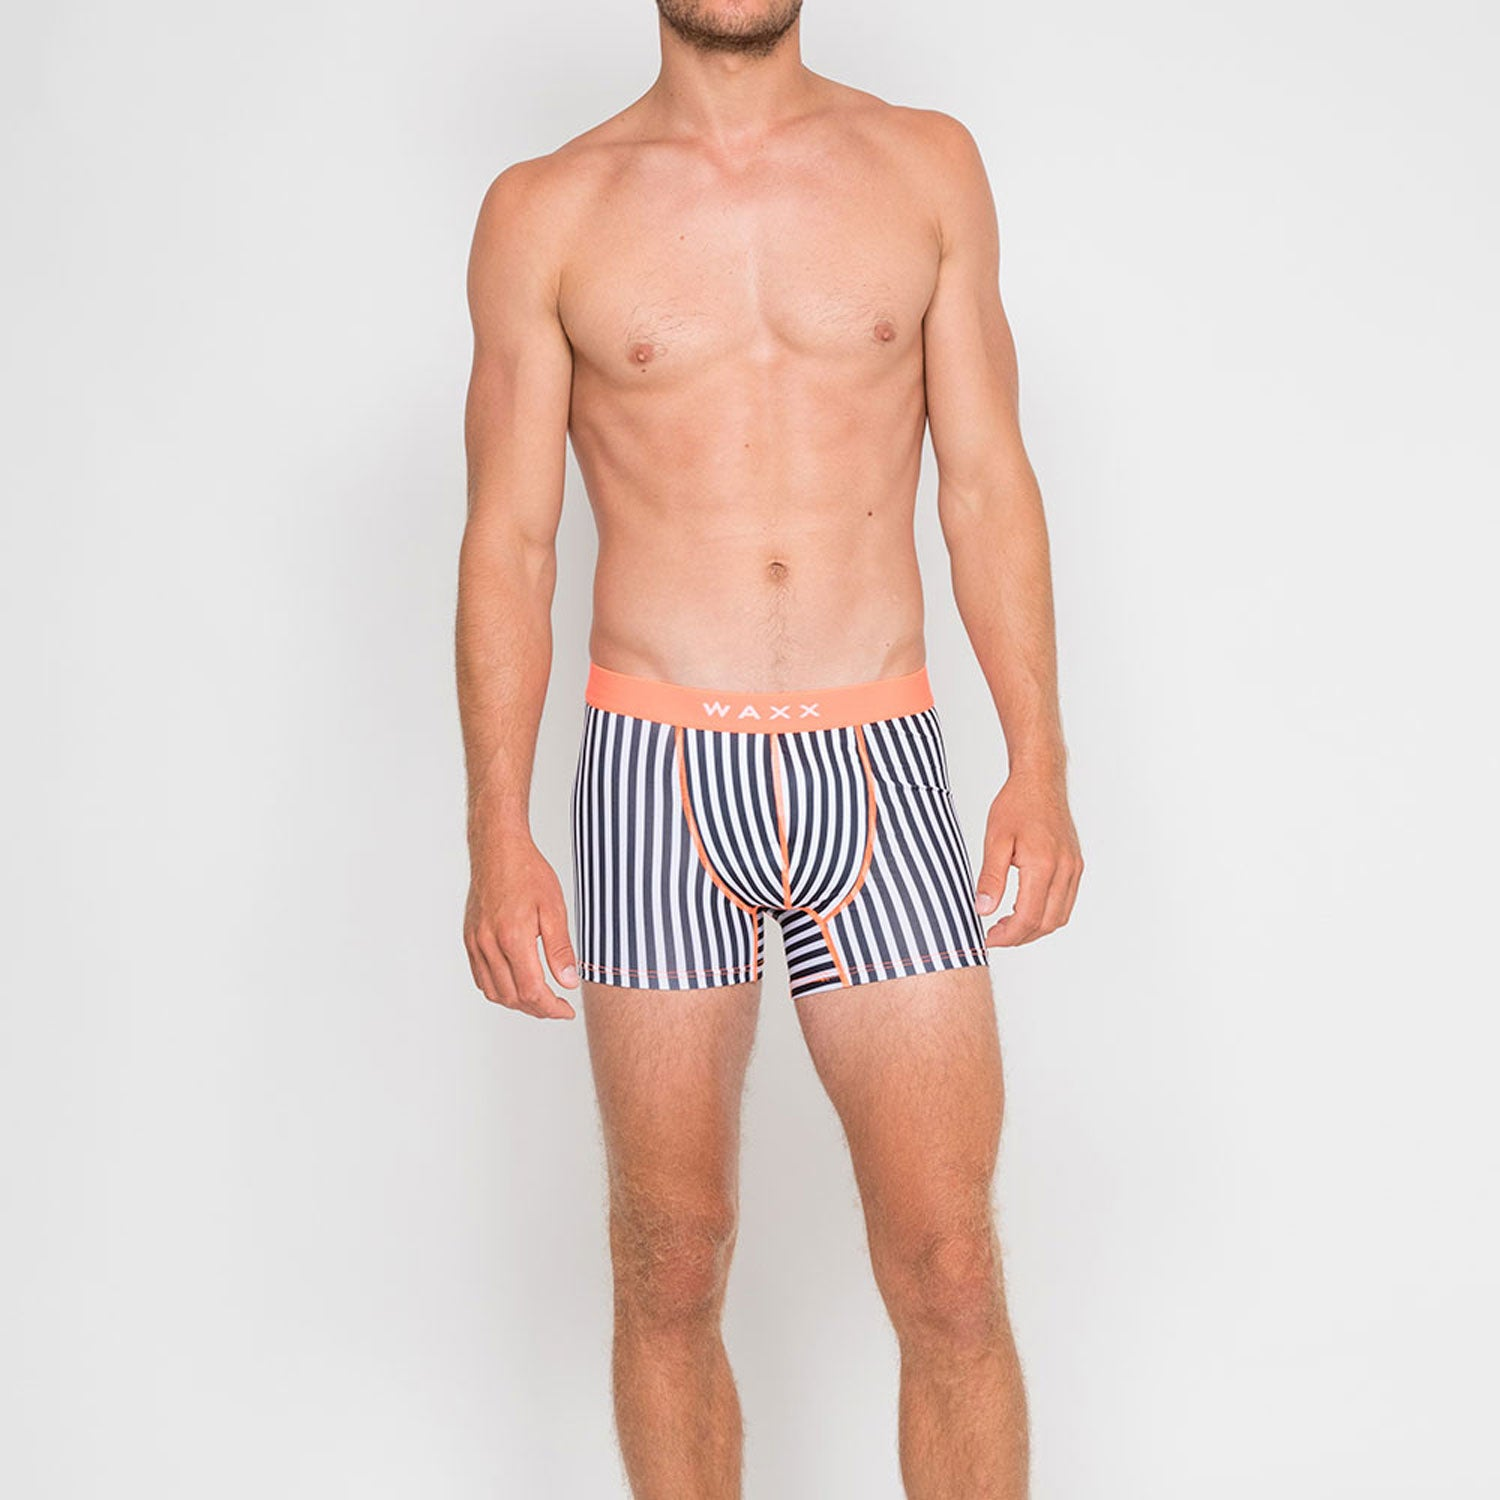 Waxx Men's Trunk Boxer Short Lines